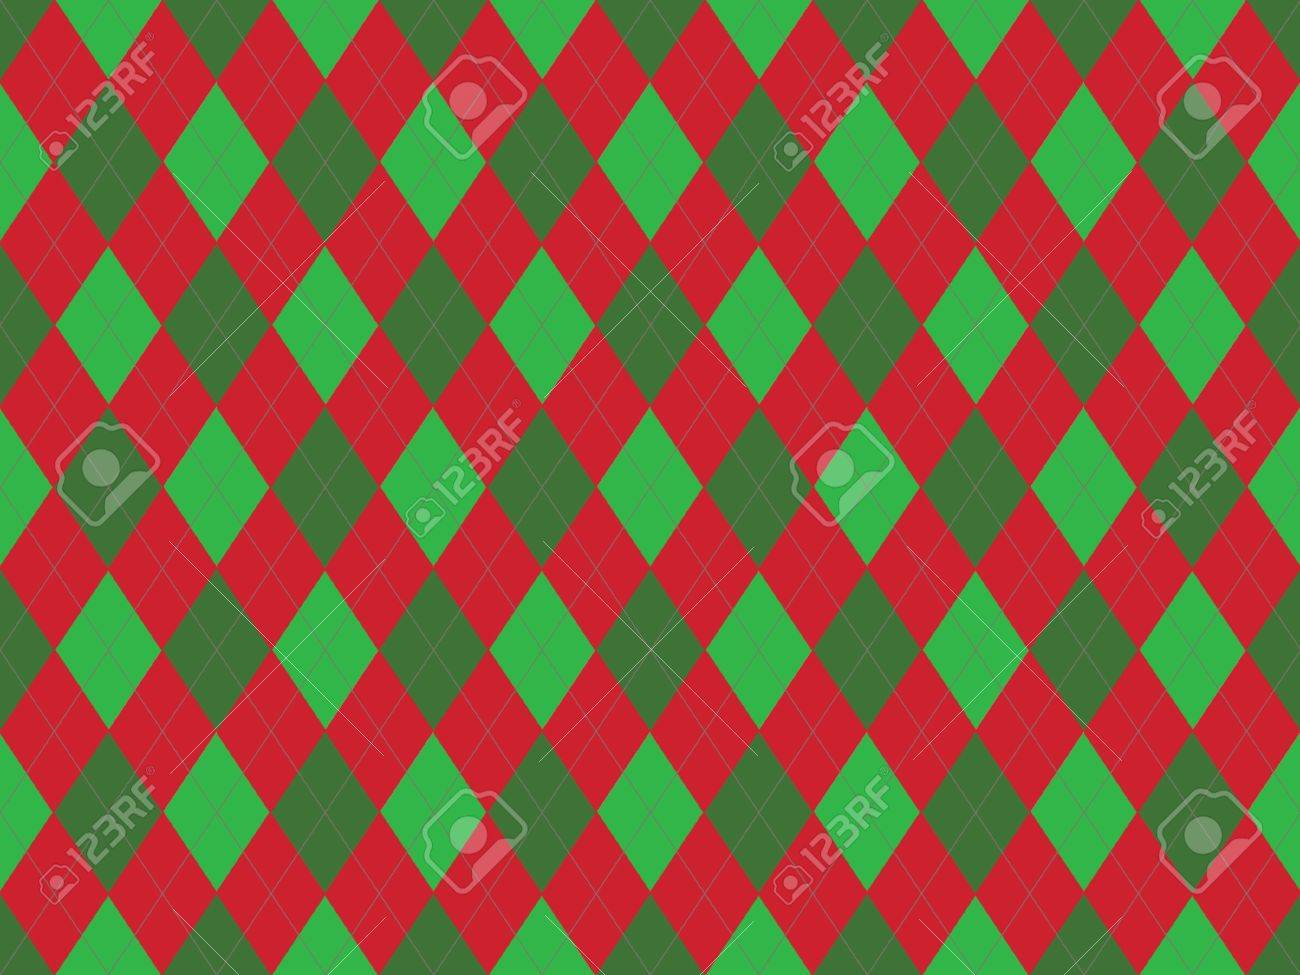 Pics photos merry christmas argyle twitter backgrounds - Christmas Seamless Argyle Pattern In Green And Red Rhombuses Stock Photo 8802028